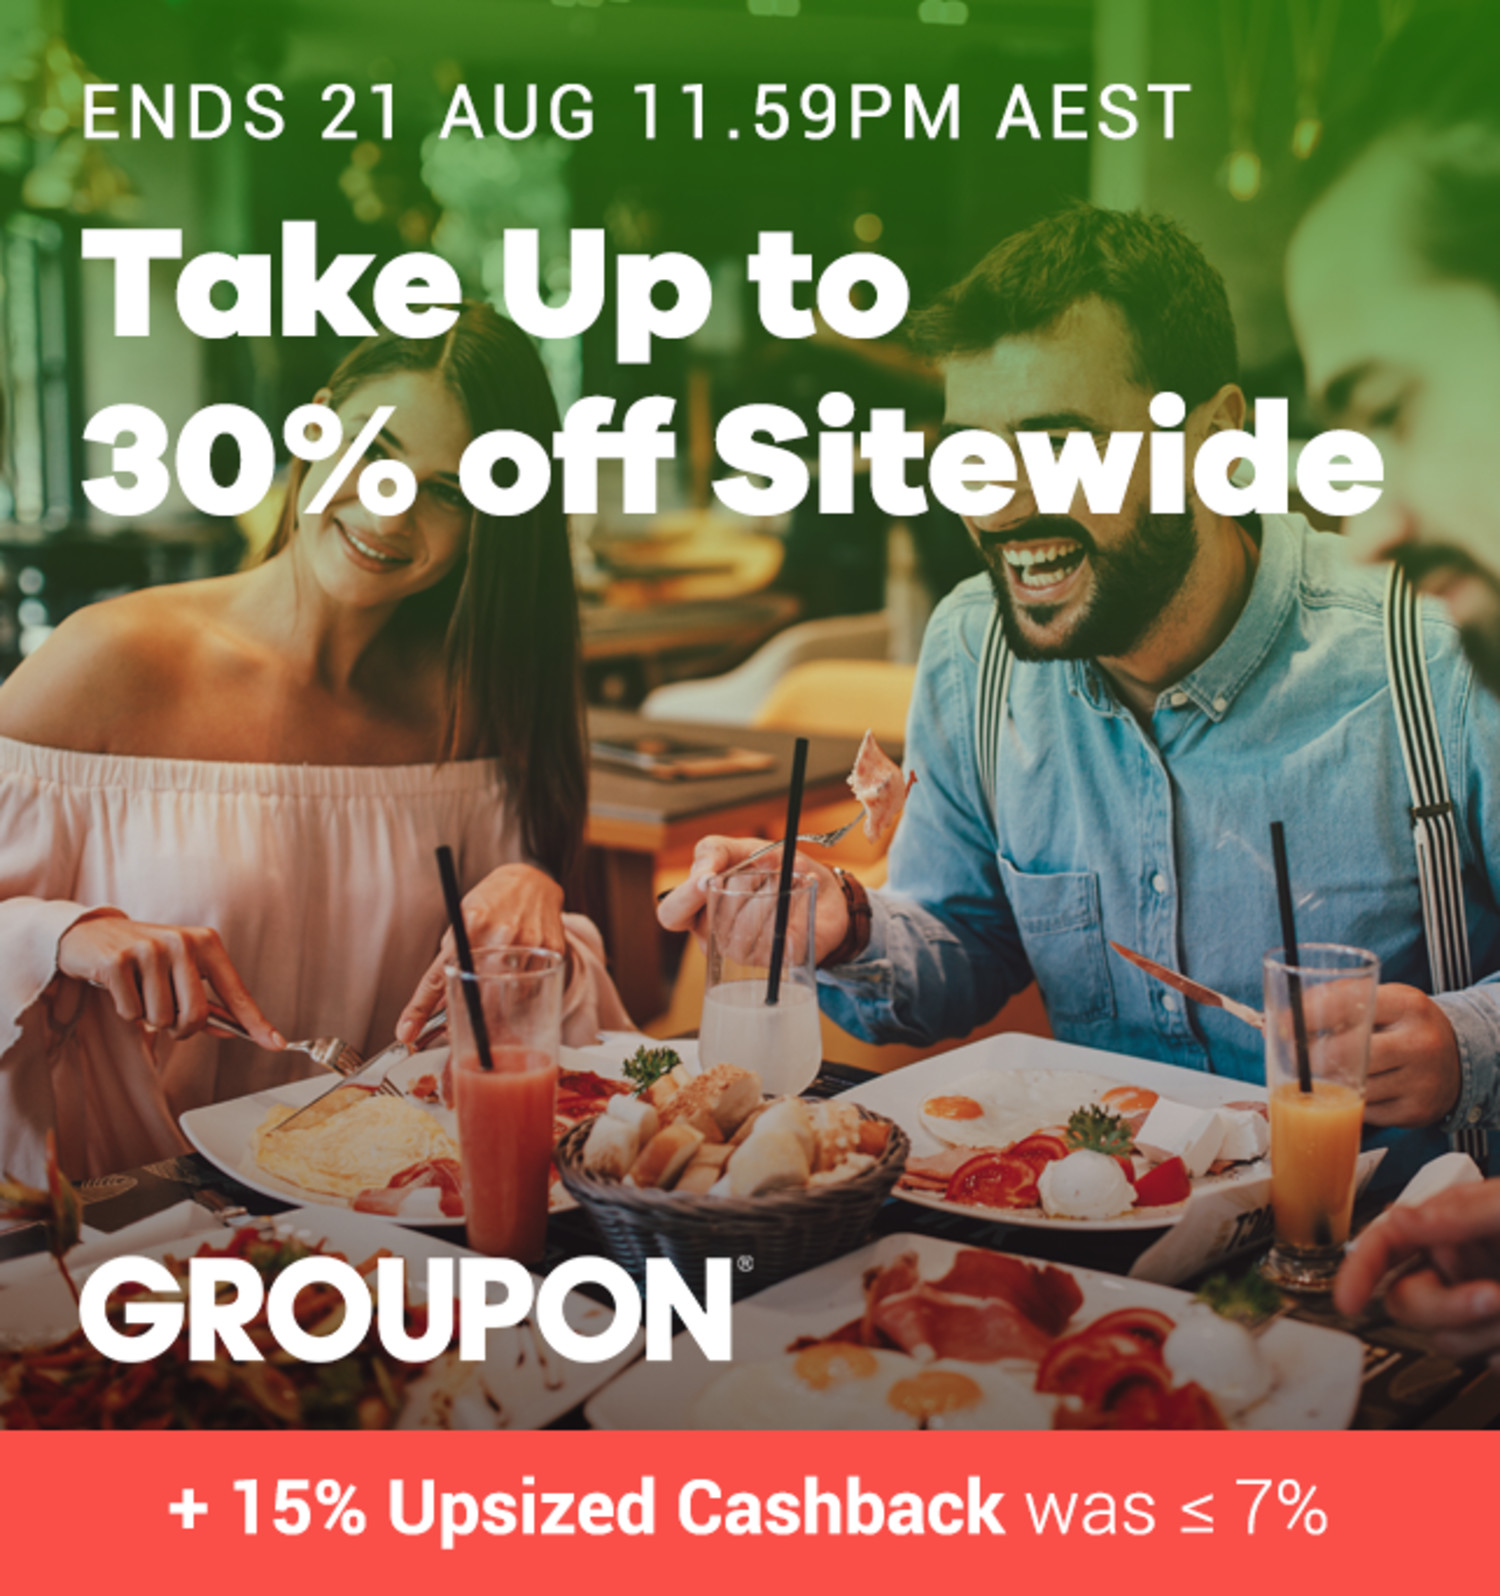 Groupon - Up to 30% off Sitewide + 15% Upsized Cashback